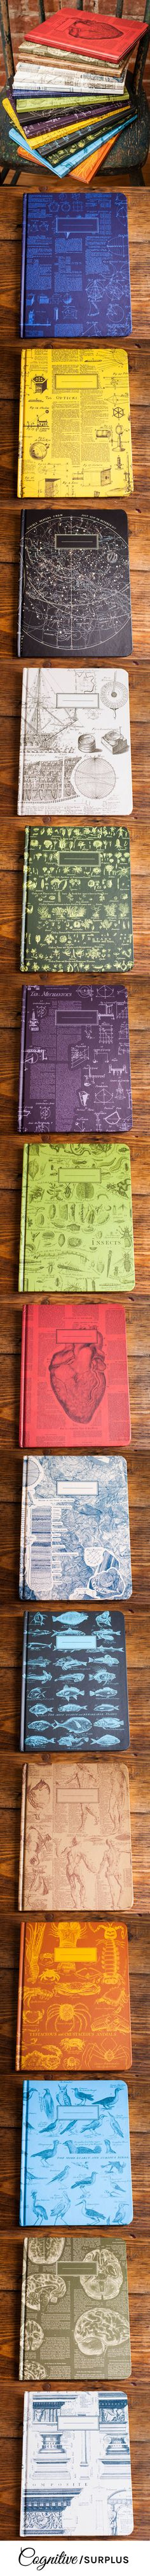 The pages are college ruled on one side and graph paper on the back! They make perfect gifts for all your science and math nerd friends. Each notebook tells its own story sporting vintage imagery and text from the first encyclopedia. Combination of two loves, vintagey awesomeness and a beautiful notebook